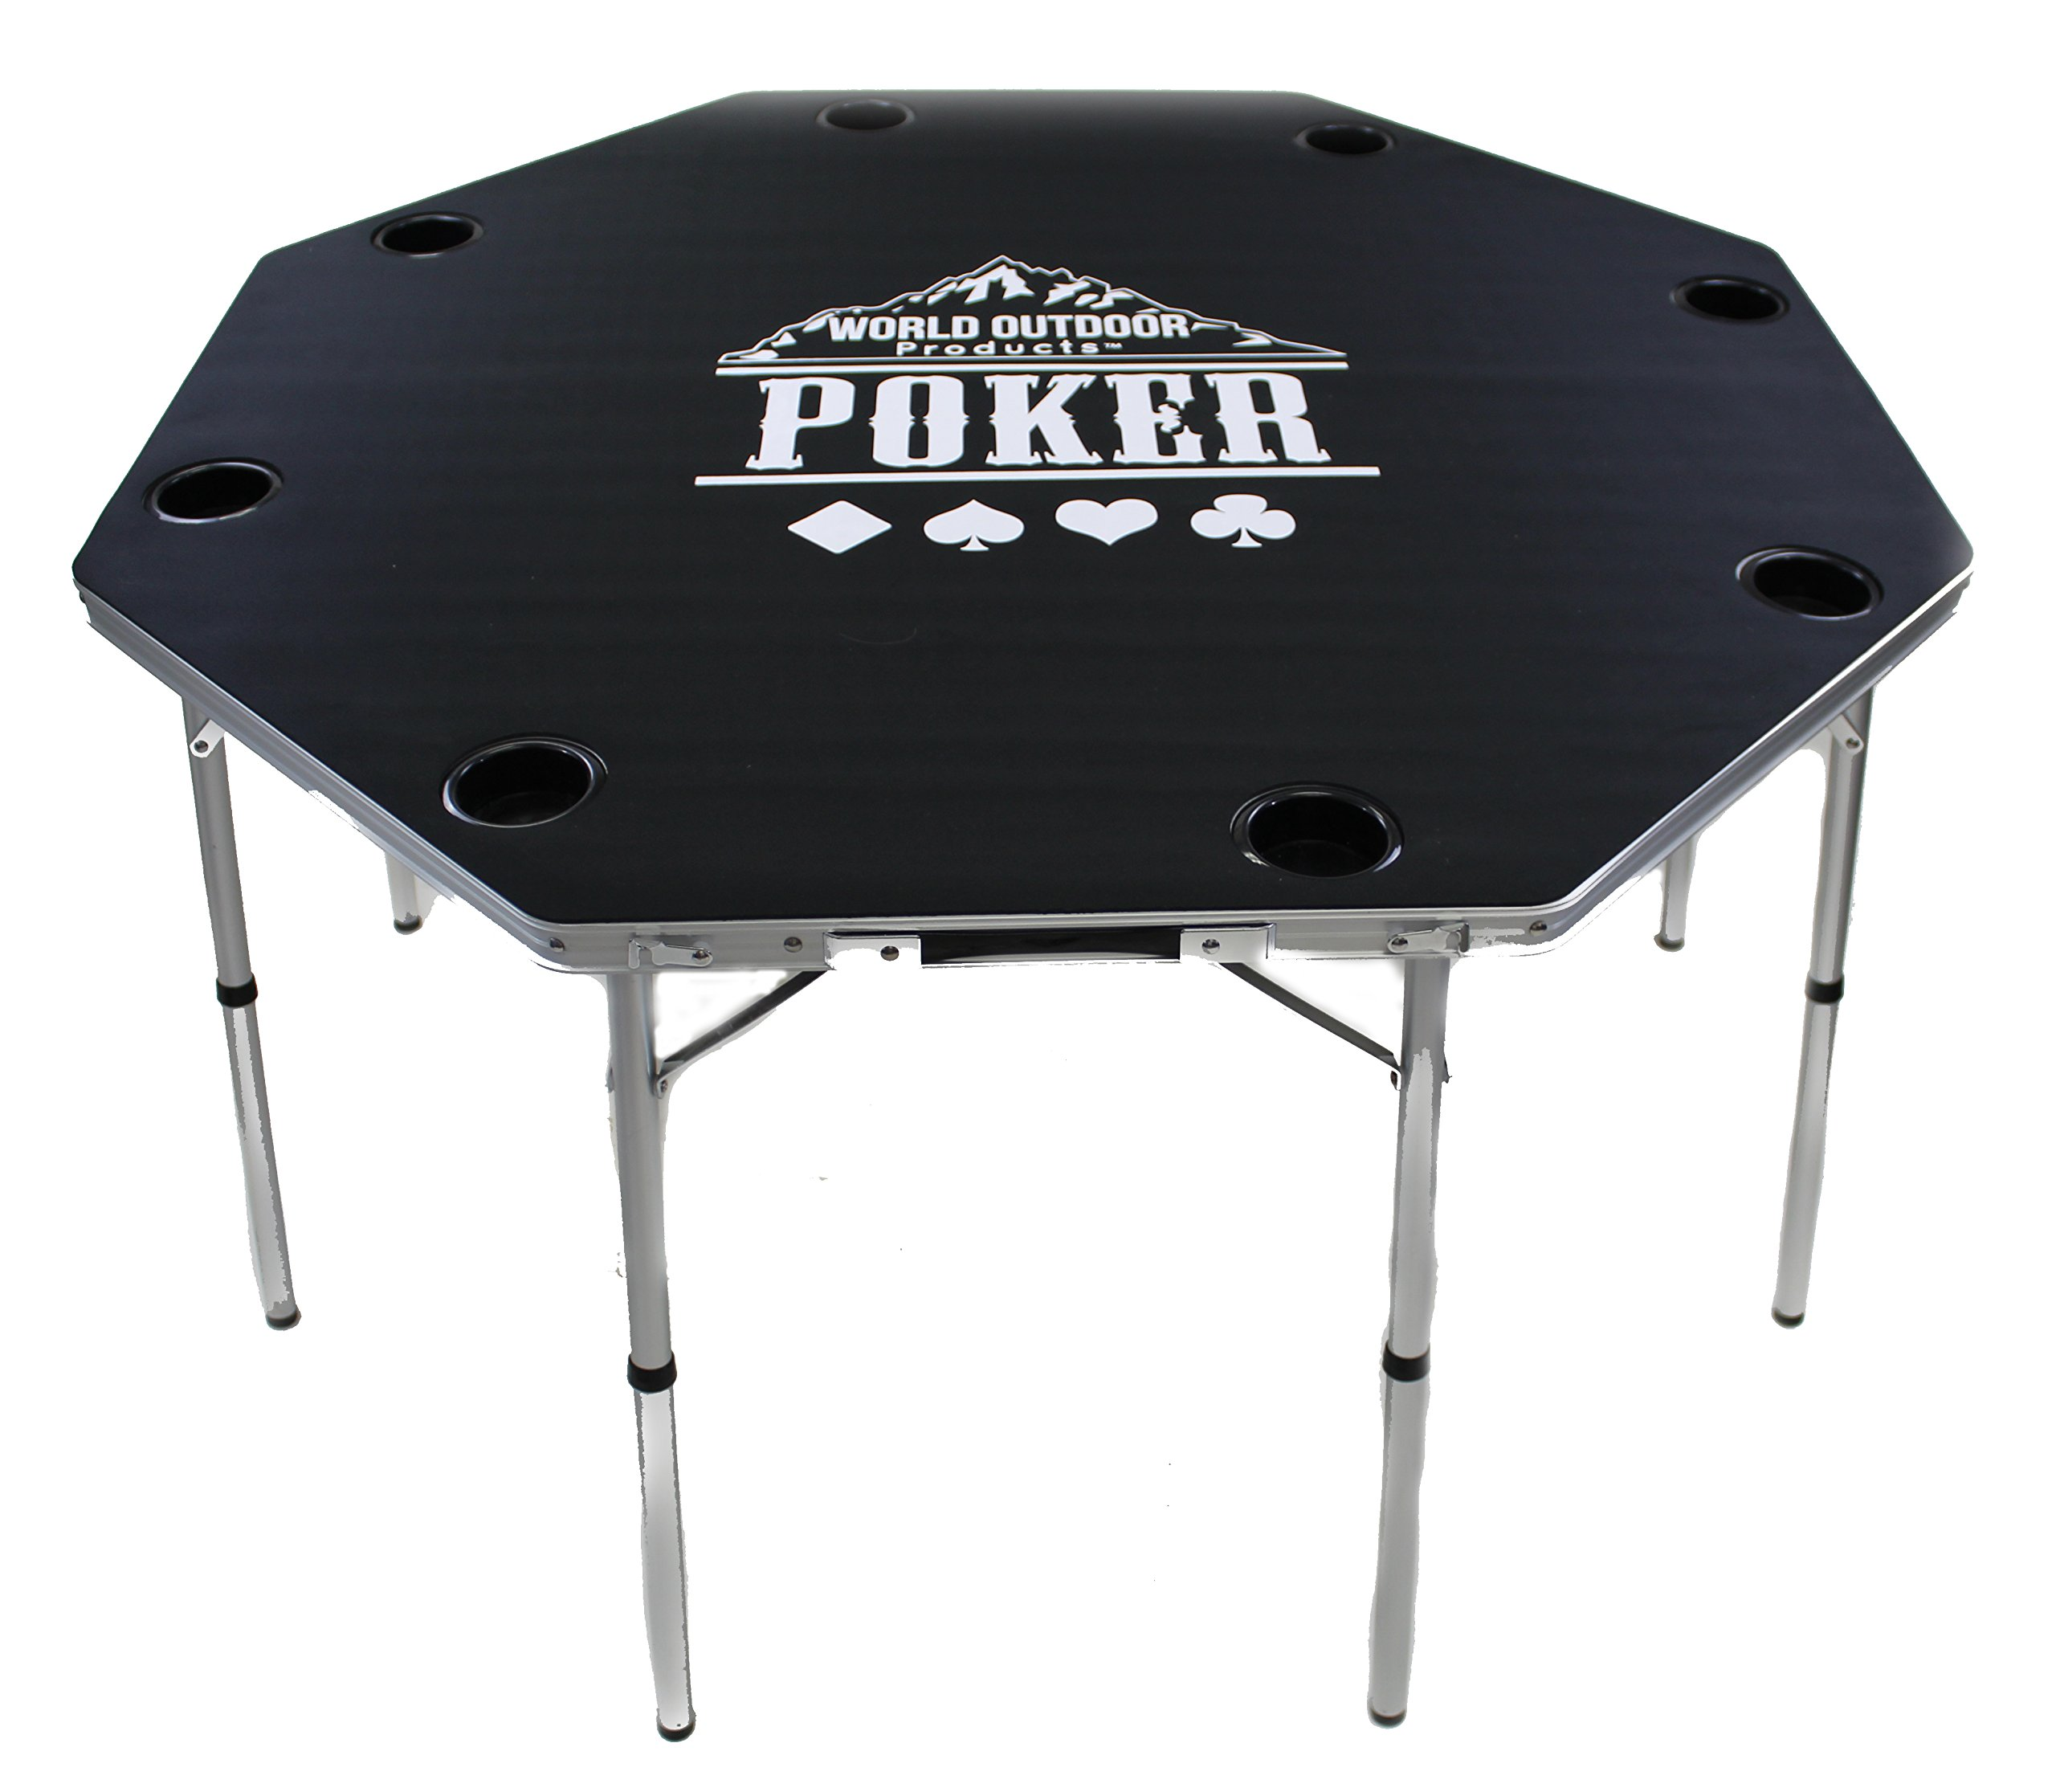 World Outdoor Products New Design PROFESSIONAL Multi-Purpose CARD PLAYING GAME TABLE for 2017. by World Outdoor Products (Image #1)